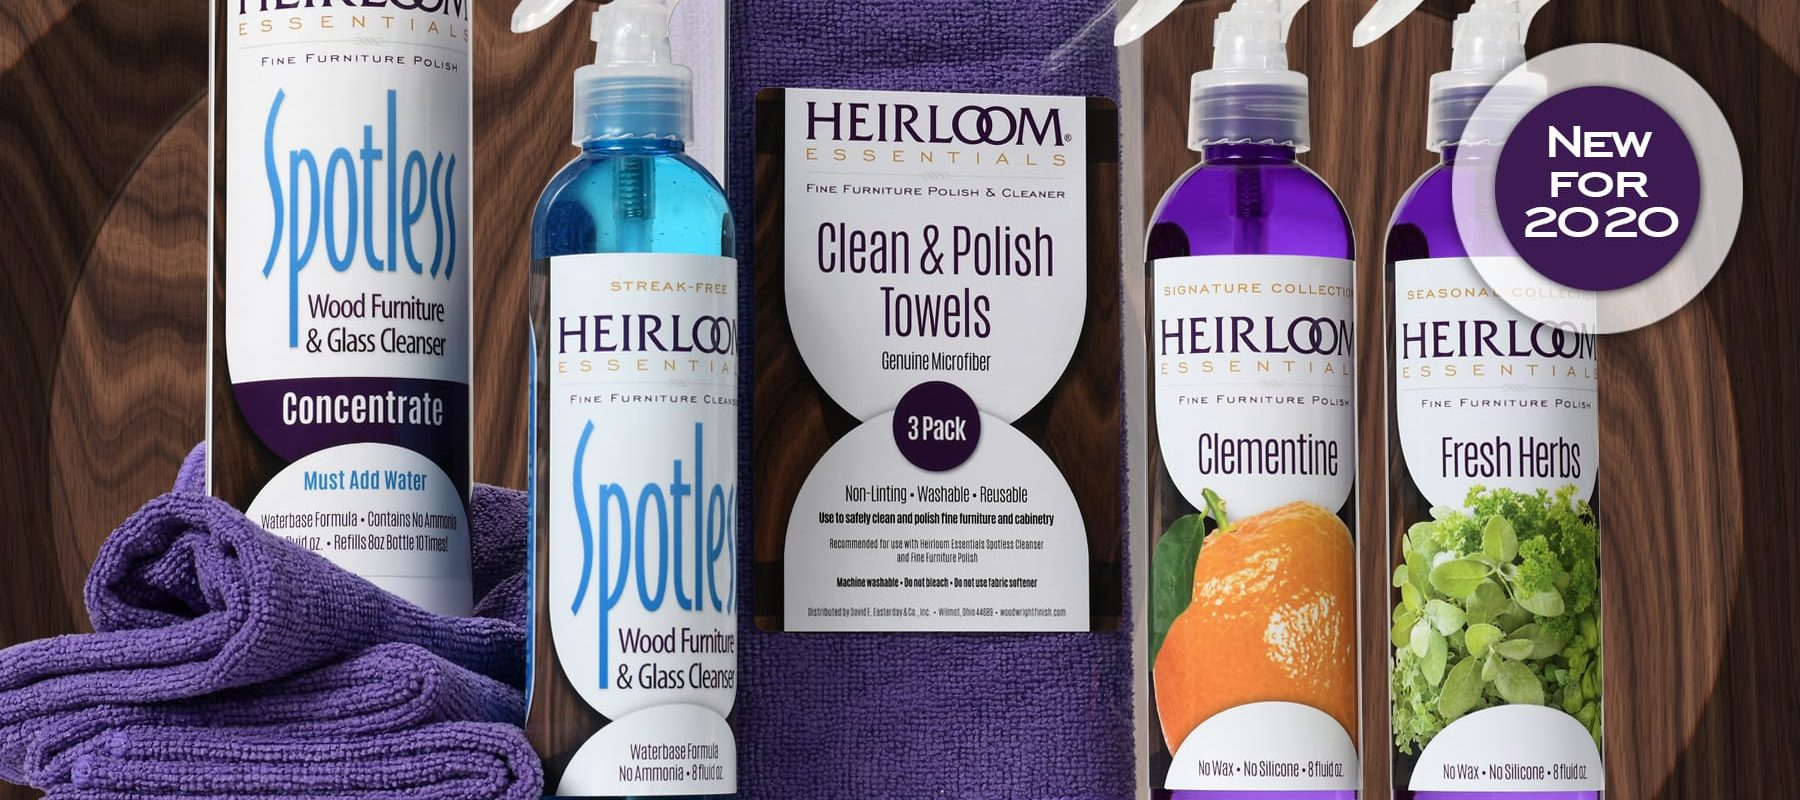 New for 2020 - A fresh new face for Heirloom Essentials